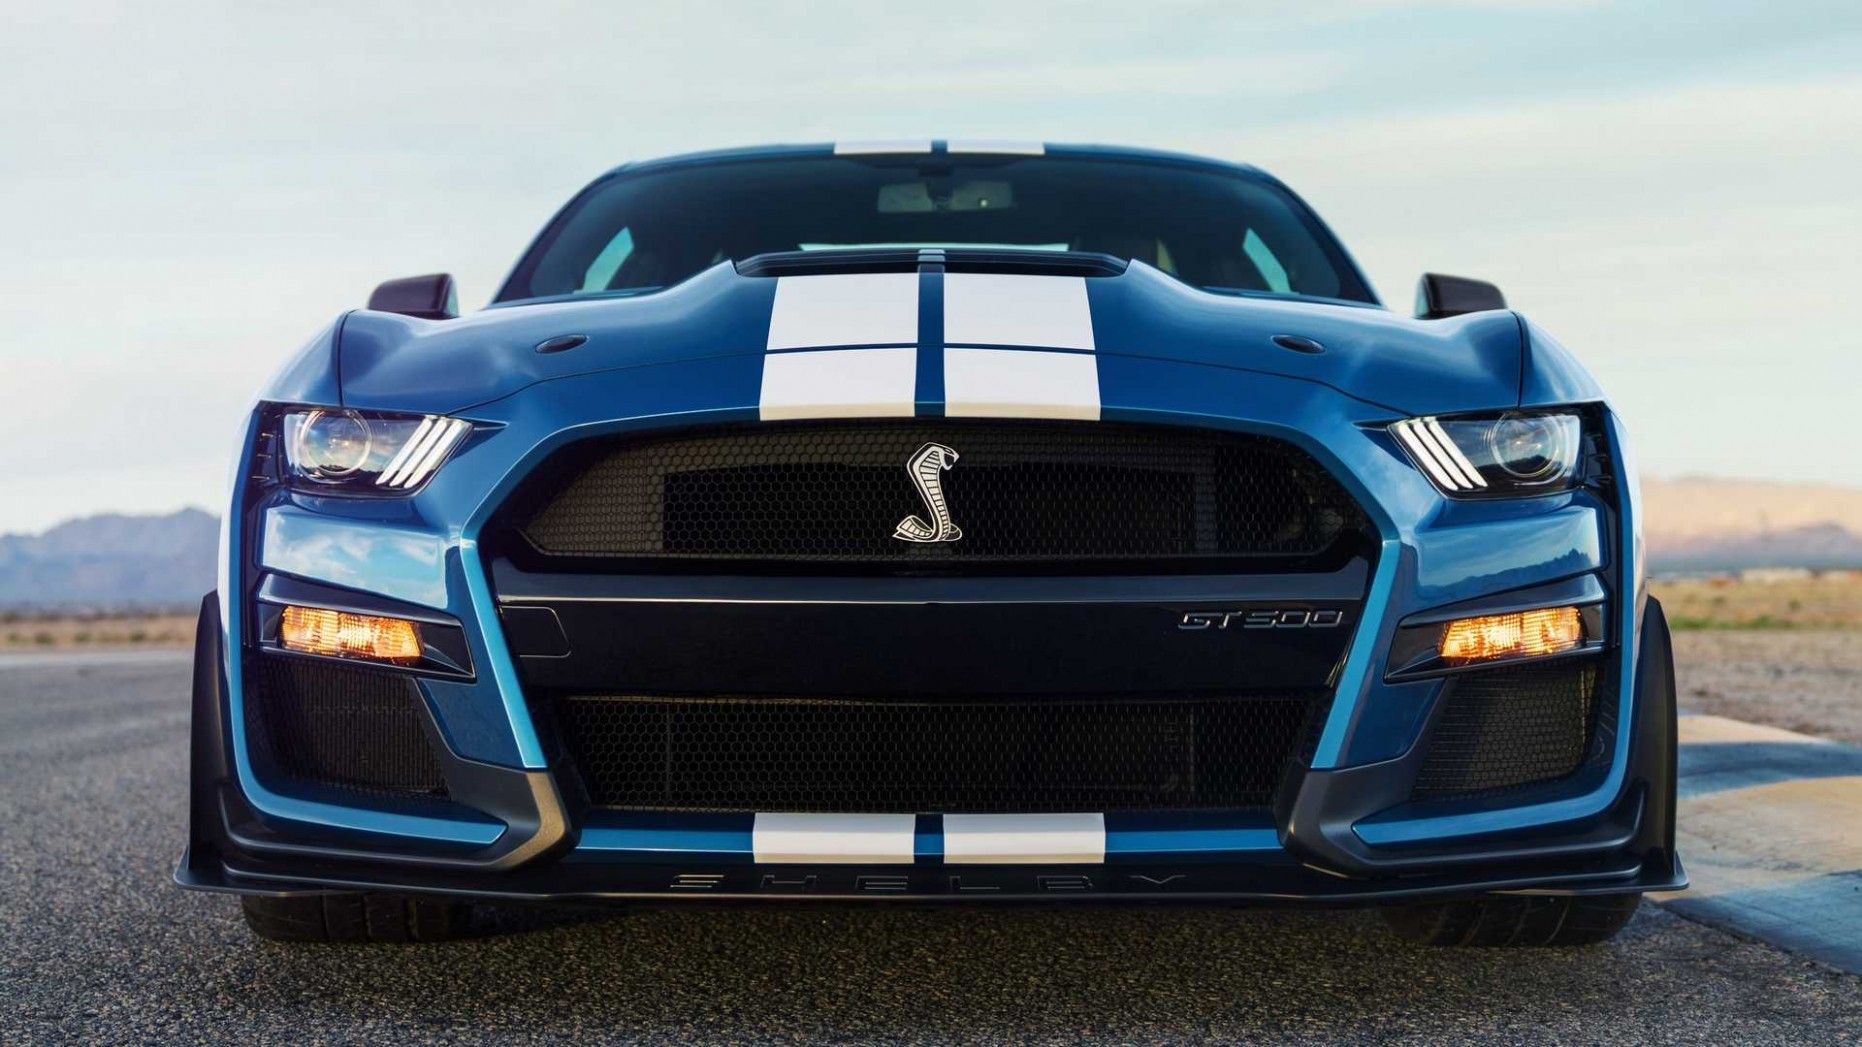 2020 Ford Mustang Shelby Gt500 Release Ford Mustang Shelby Gt500 Shelby Gt500 Ford Mustang Shelby